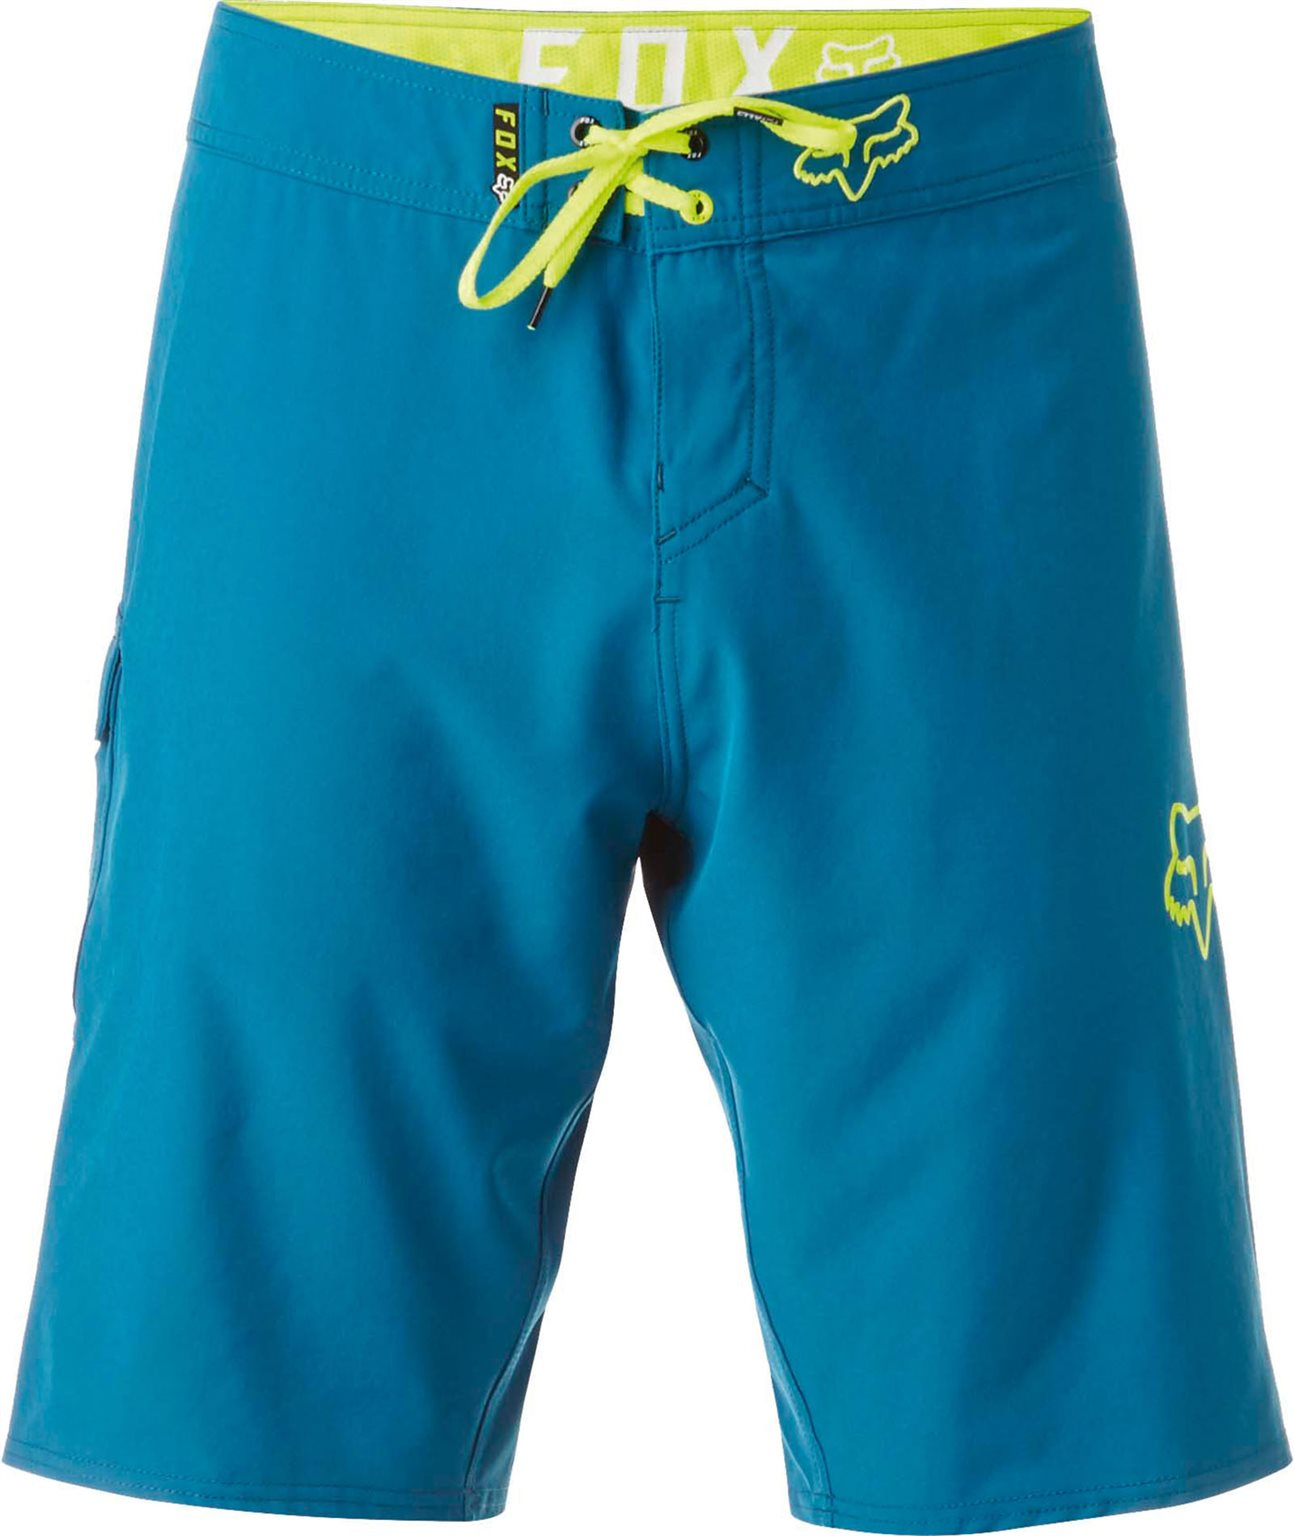 Fox boardshort Overhead Stretch